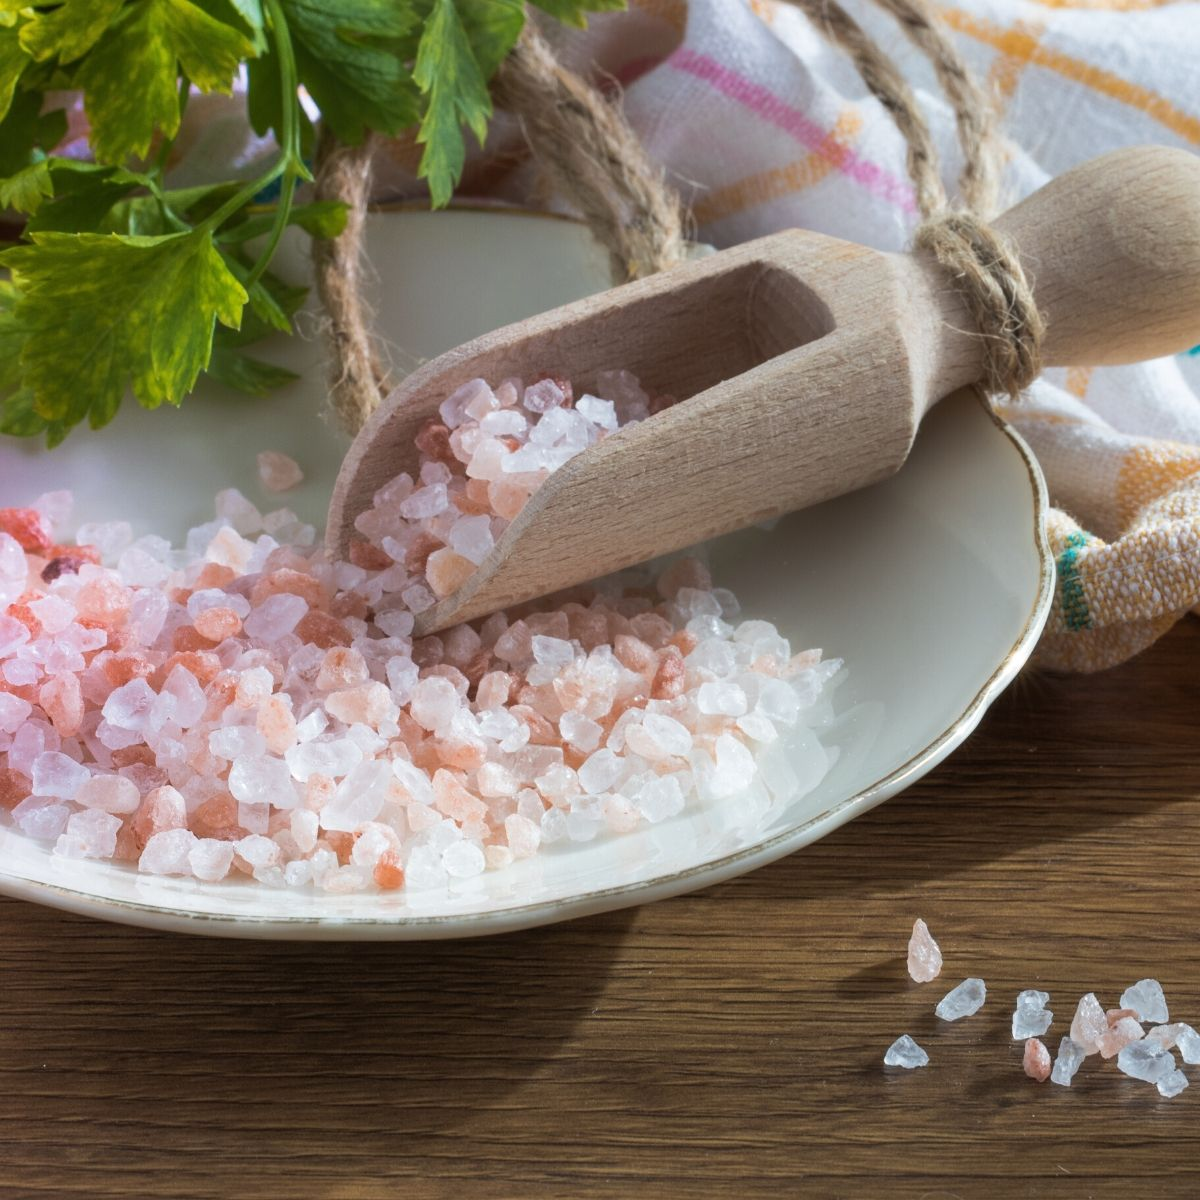 Small dish with pink salt and a small wooden scoop